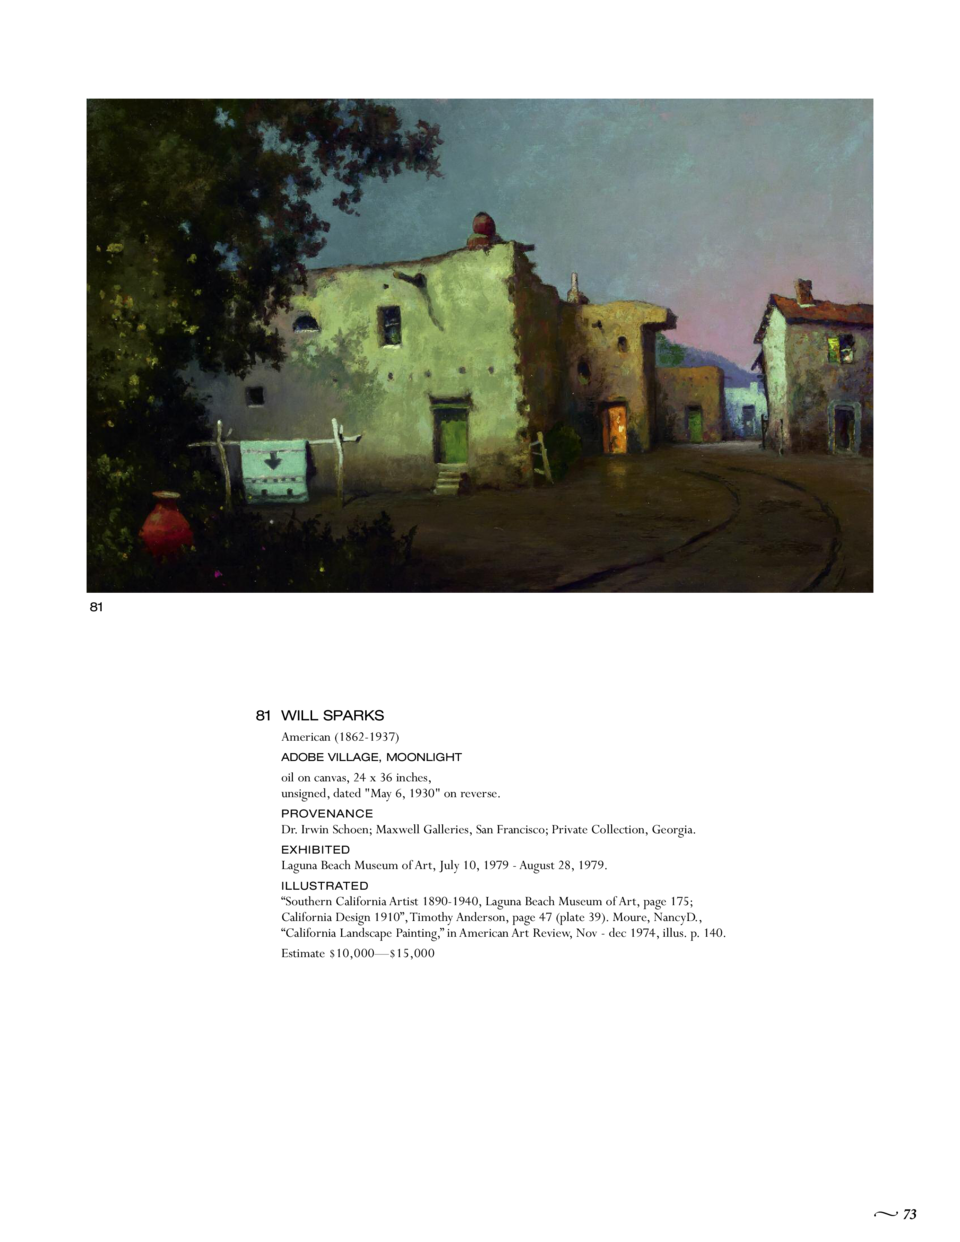 81  81 WILL SPARKS American  1862-1937  ADOBE VILLAGE, MOONLIGHT  oil on canvas, 24 x 36 inches, unsigned, dated  May 6, 1...